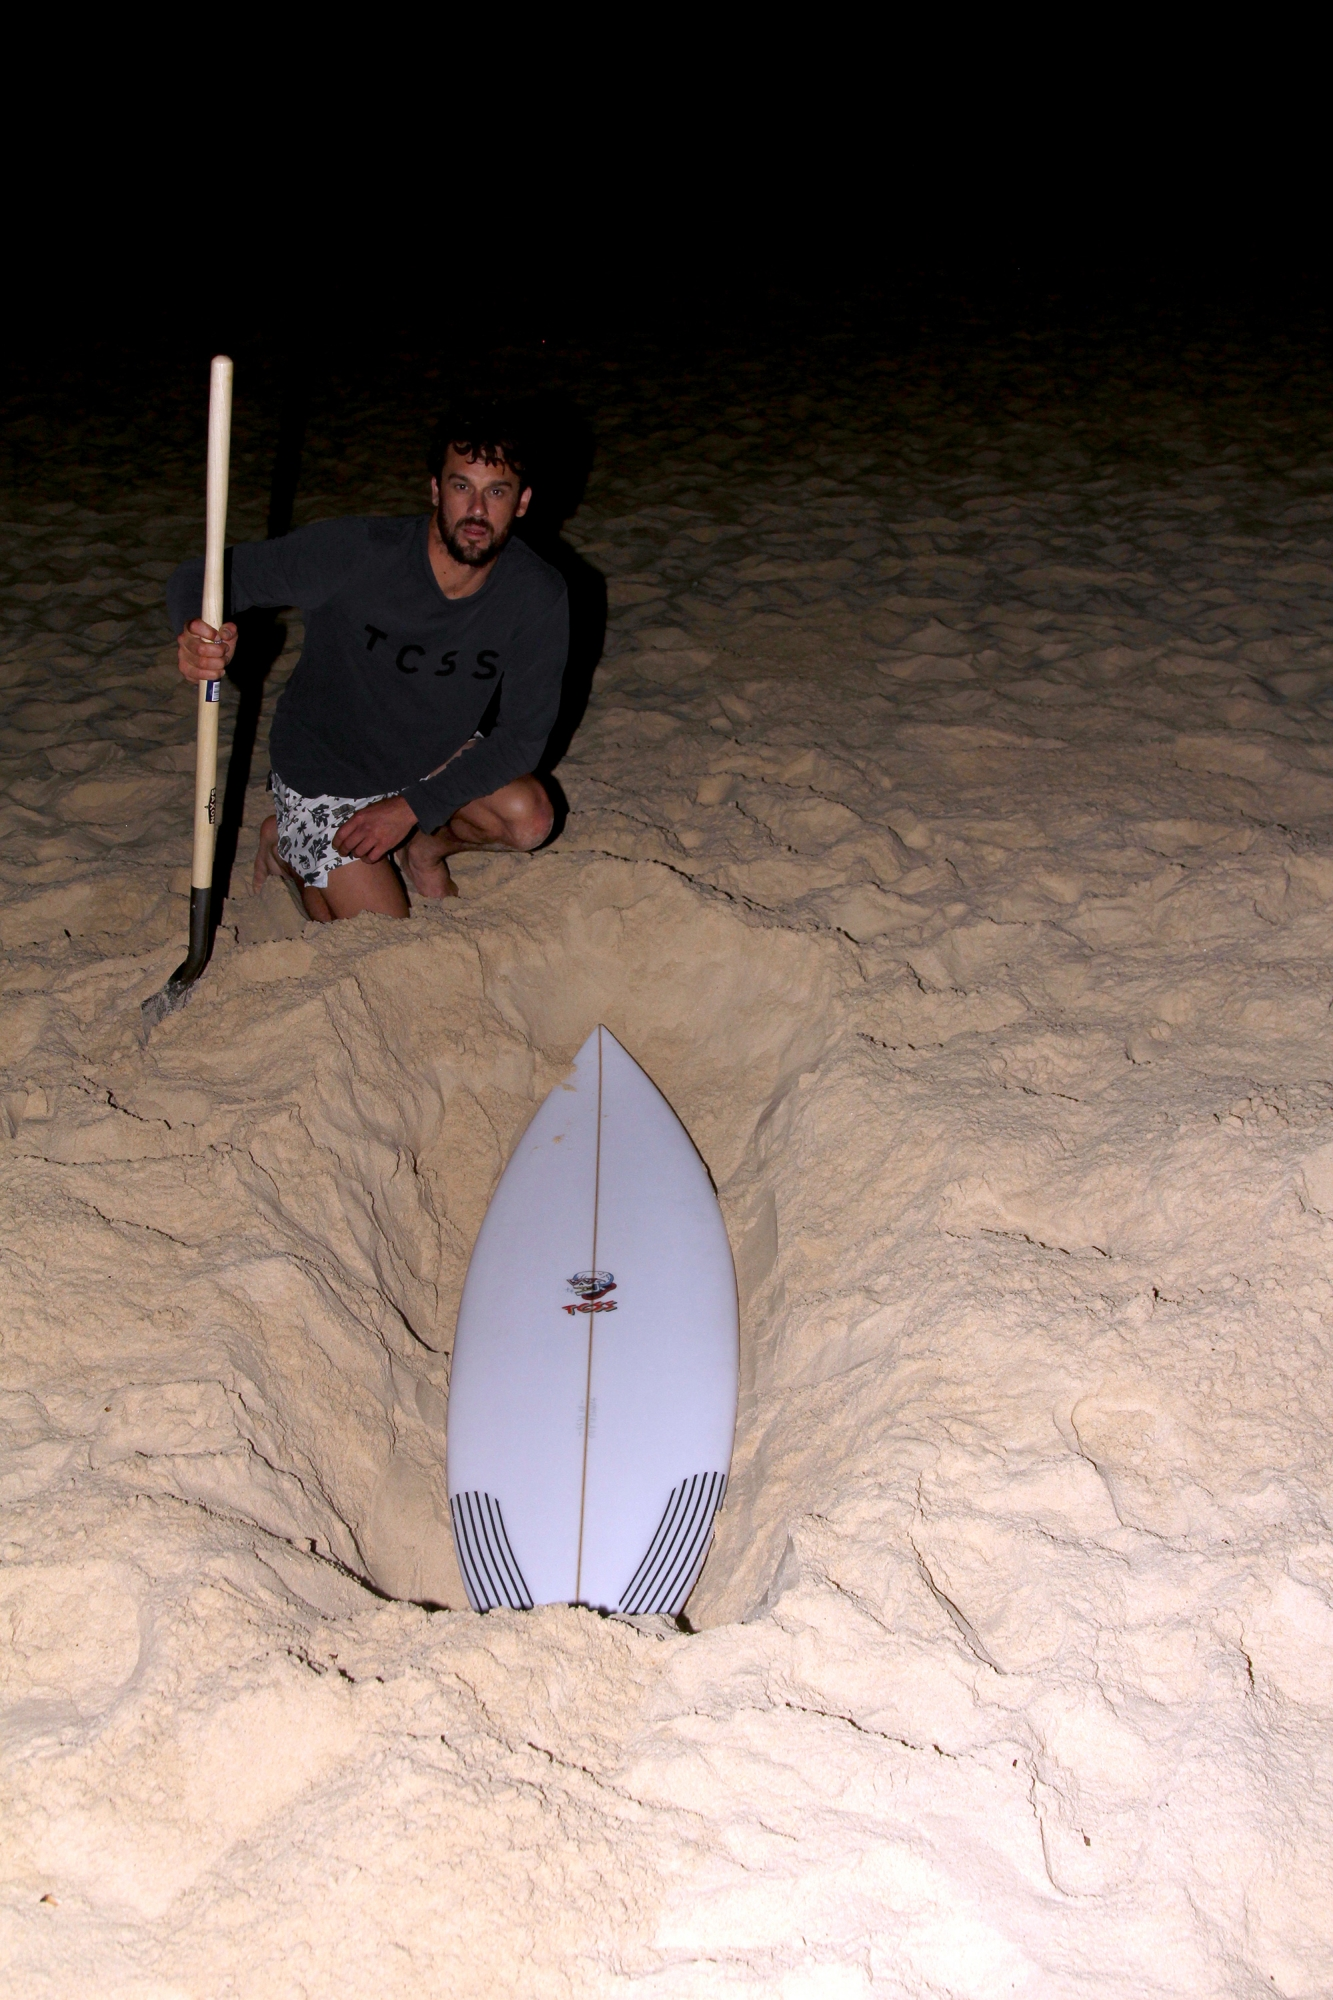 TCSS buried a board in the sands of Bondi Beach, find it - it's all yours